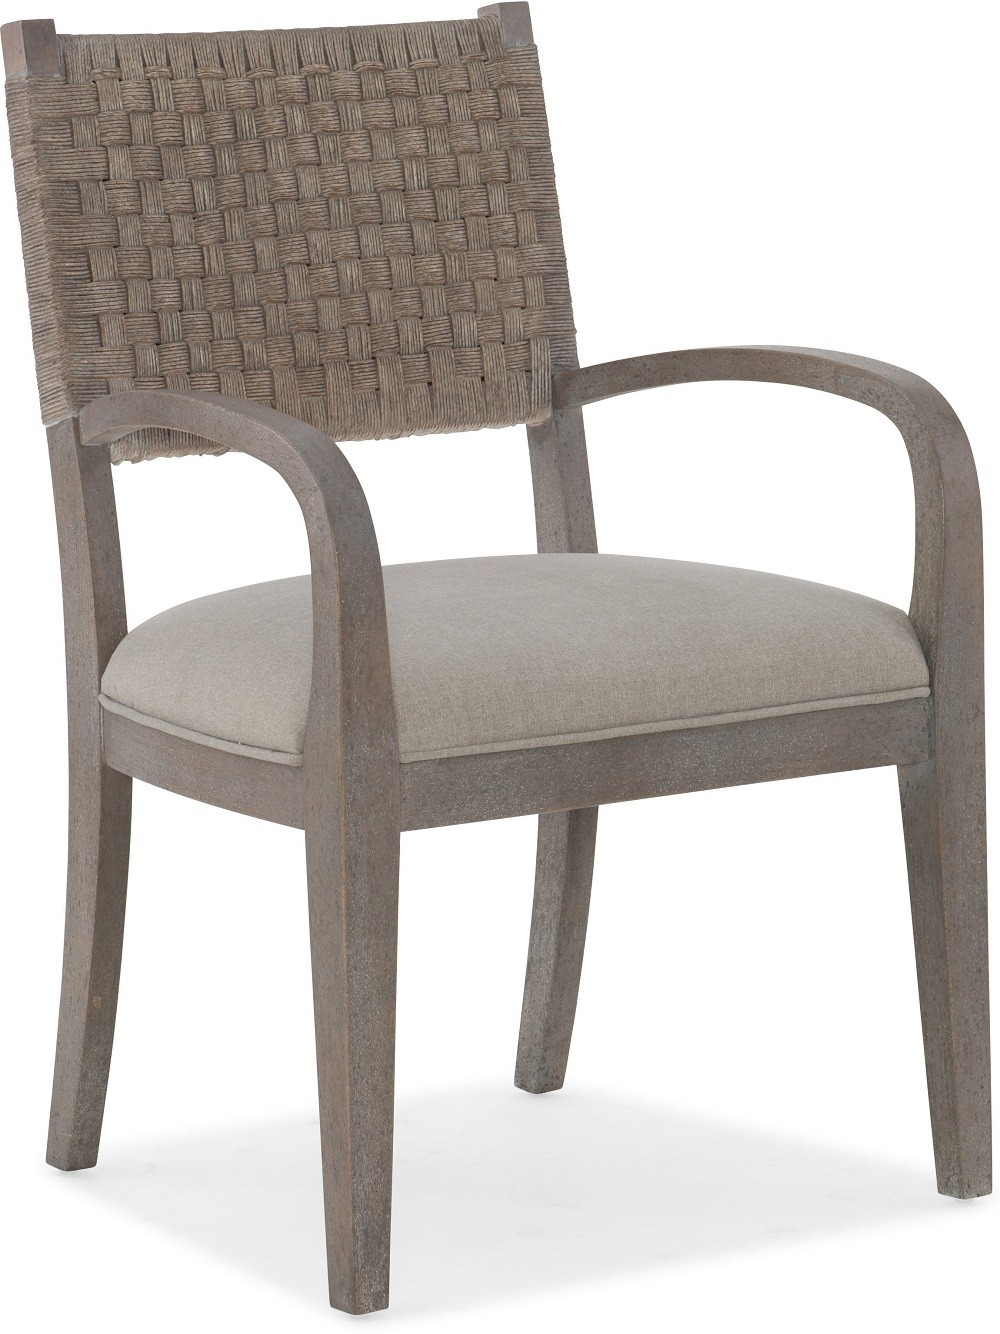 Miramar Carmel Artemis Dining Arm Chair Shop Now Retreat